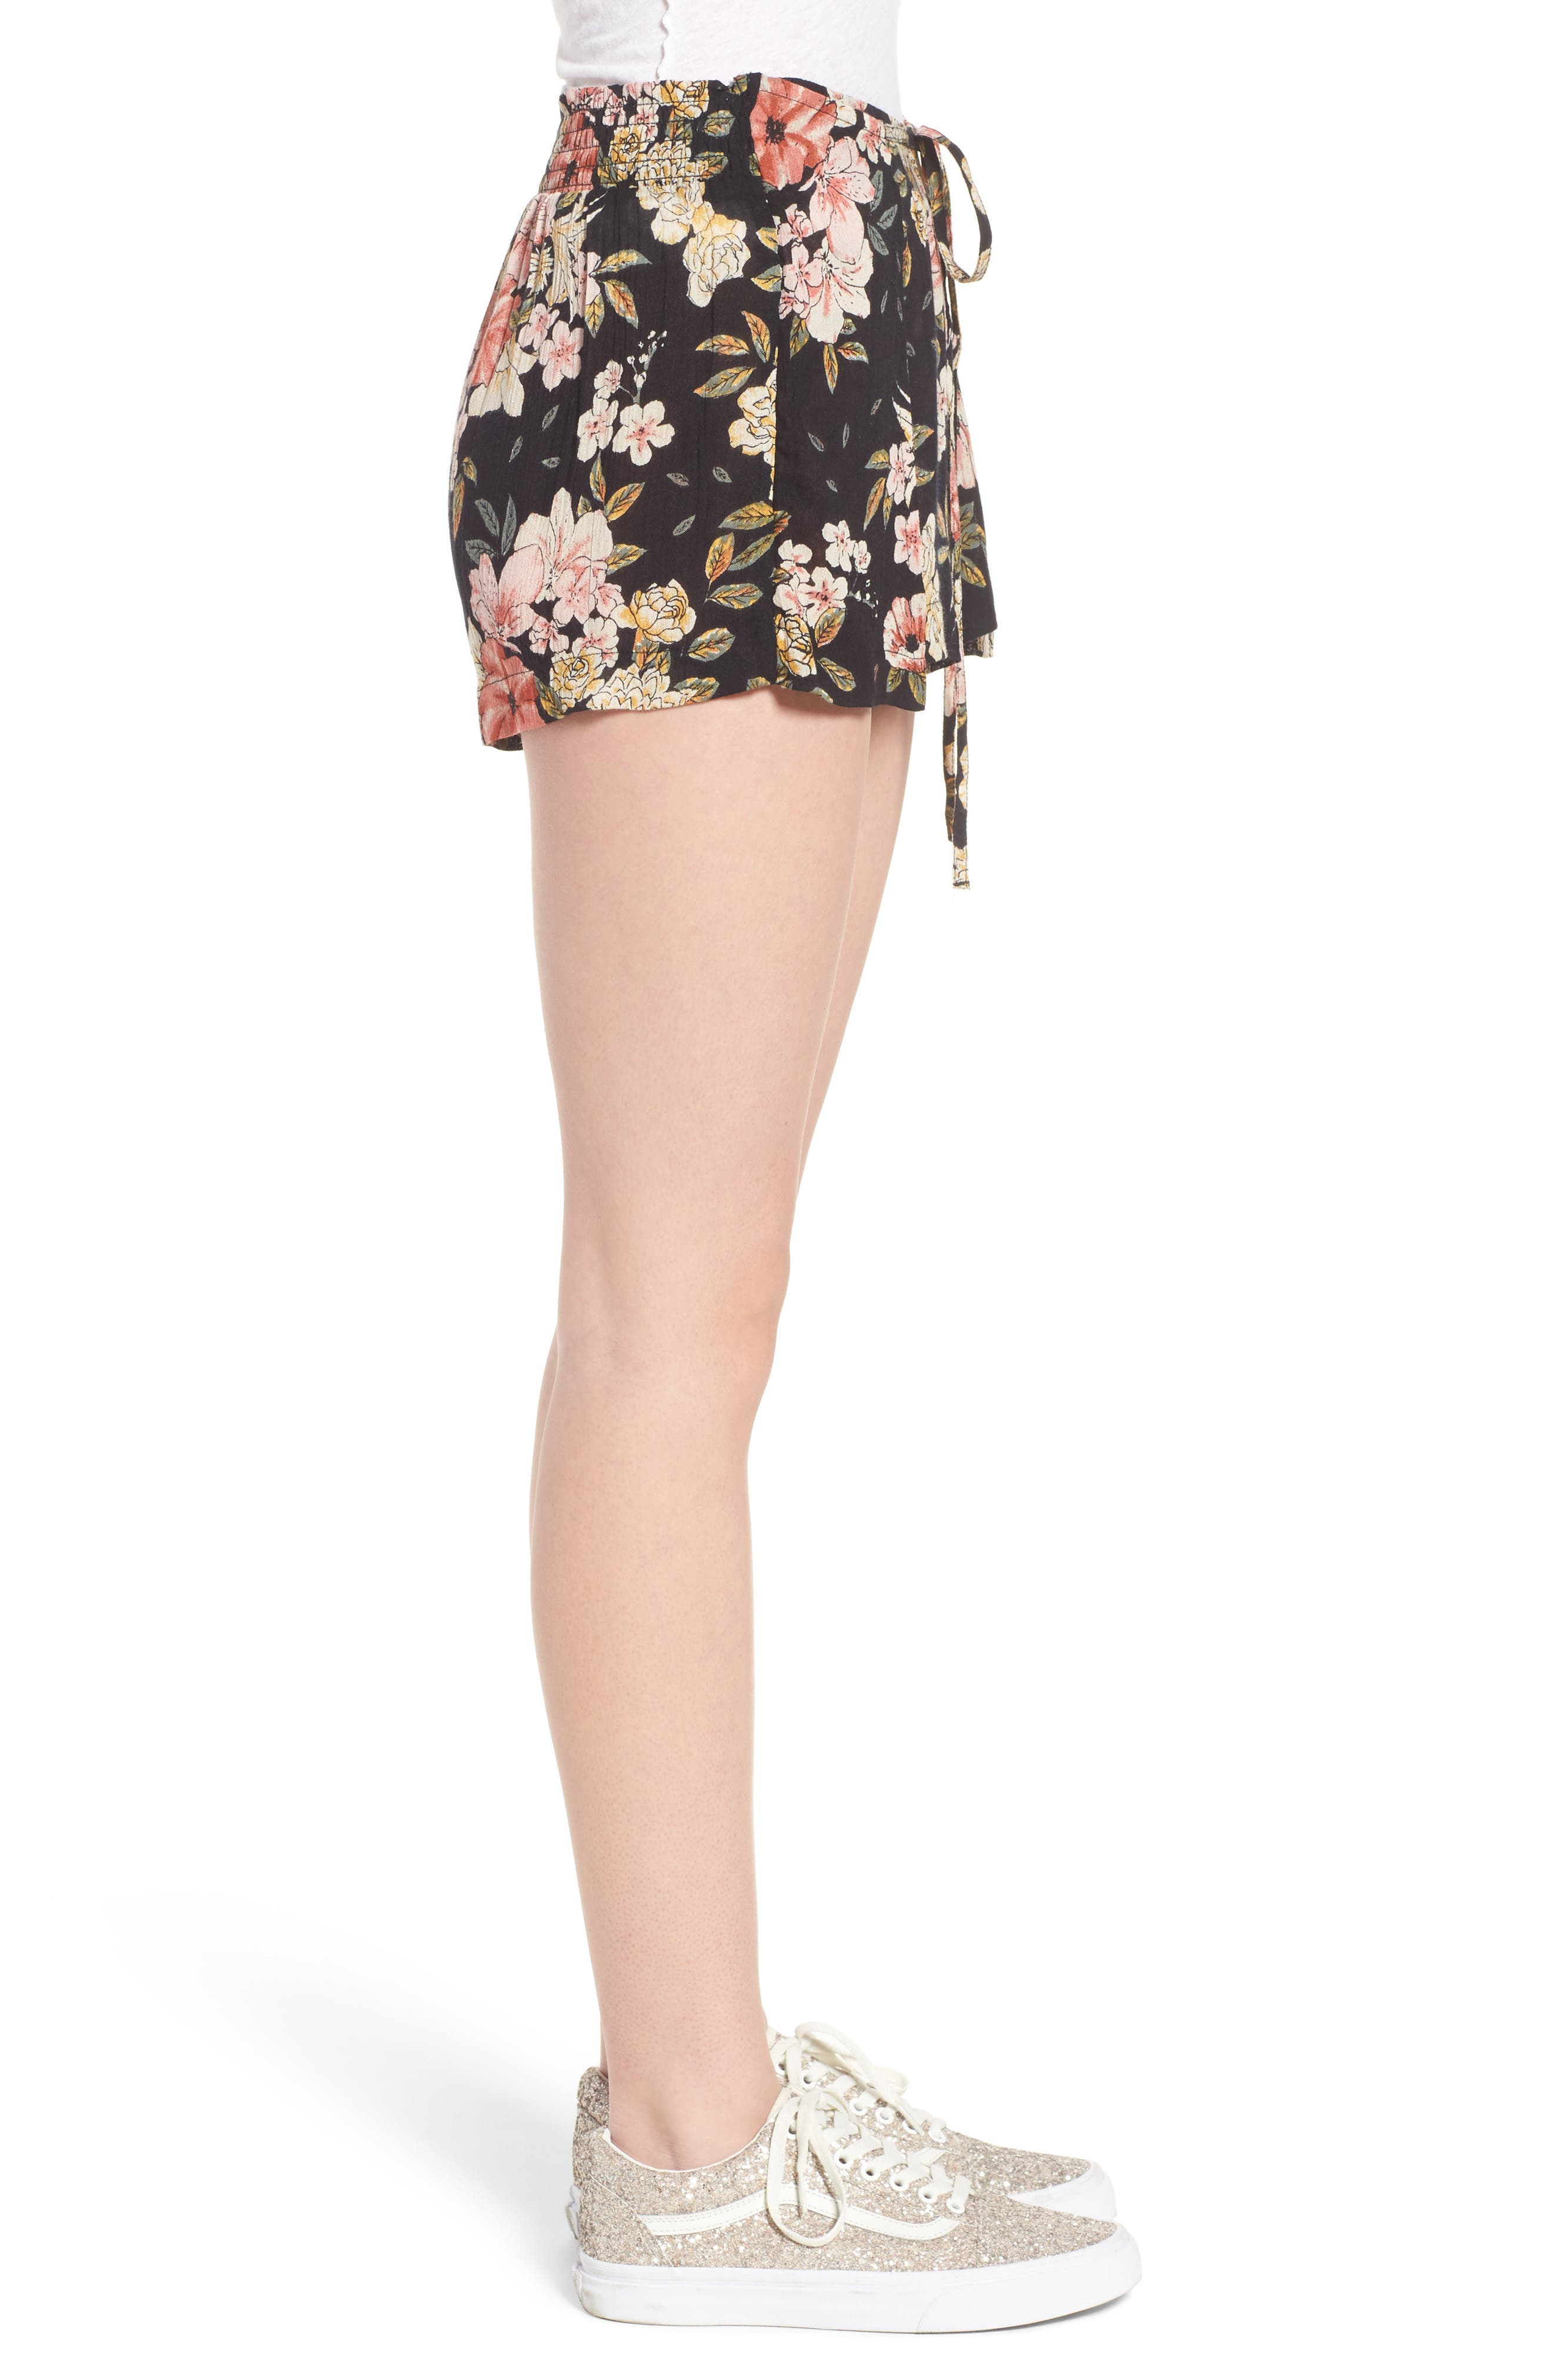 Trippy Day Floral Print Shorts,                             Alternate thumbnail 4, color,                             Black